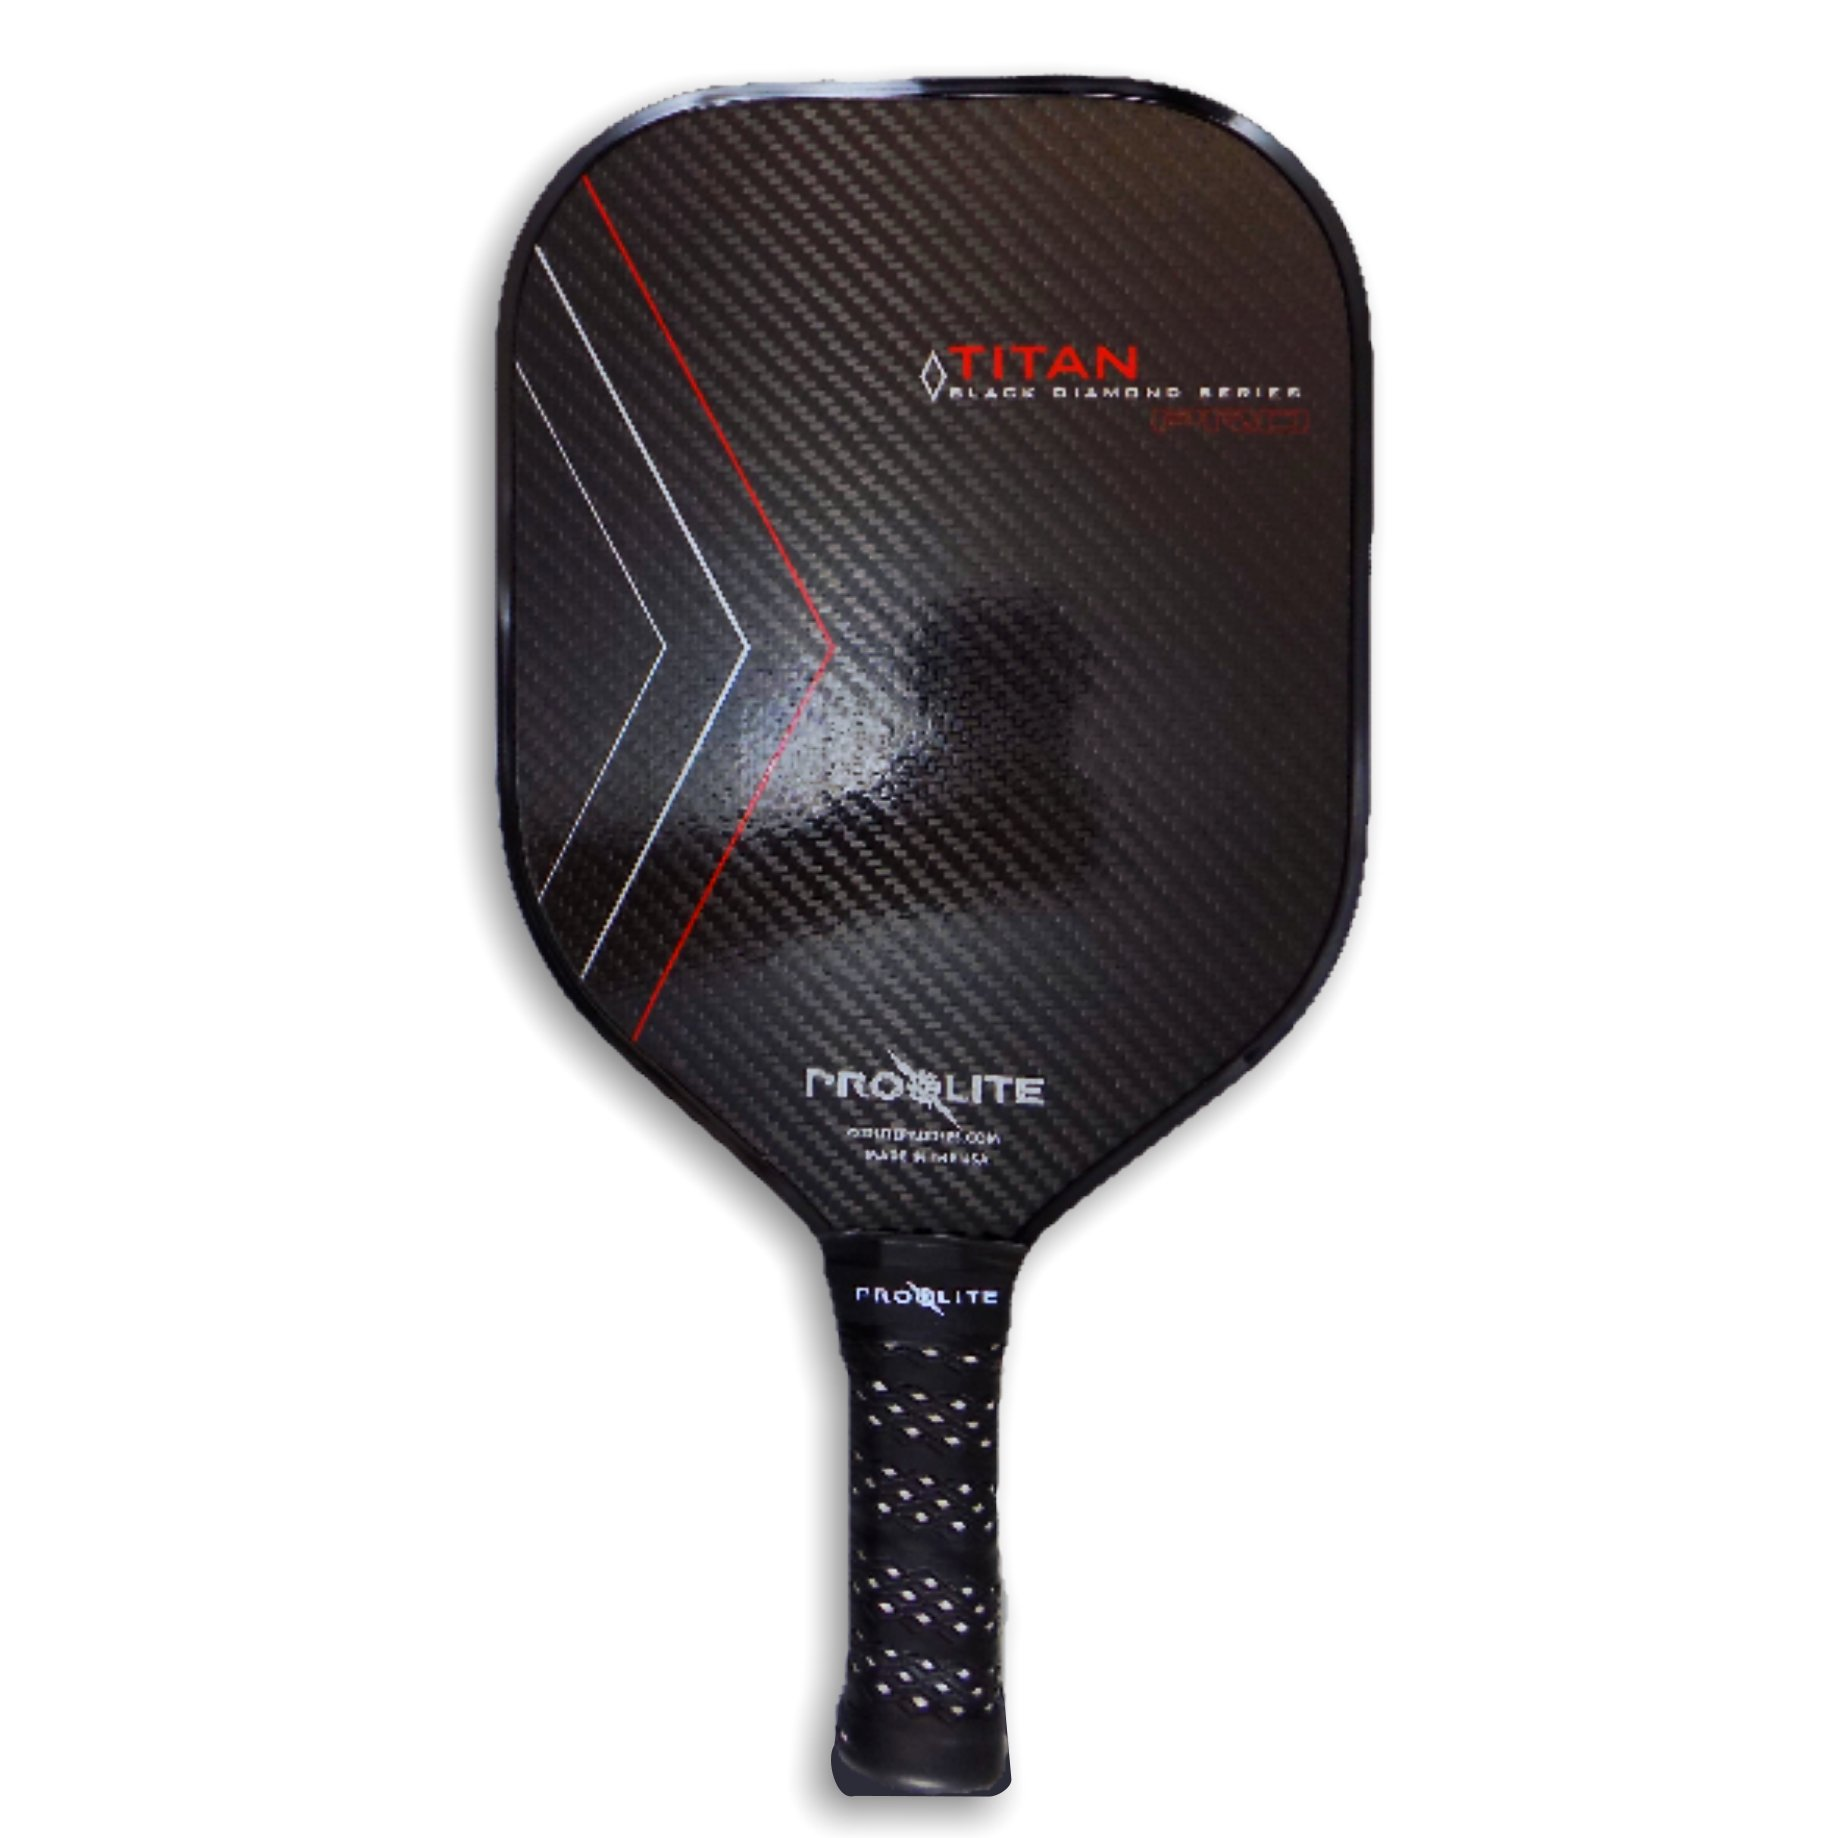 ProLite TITAN Pro - Black Diamond Series - Crimson Pickleball Paddle by Pro-Lite